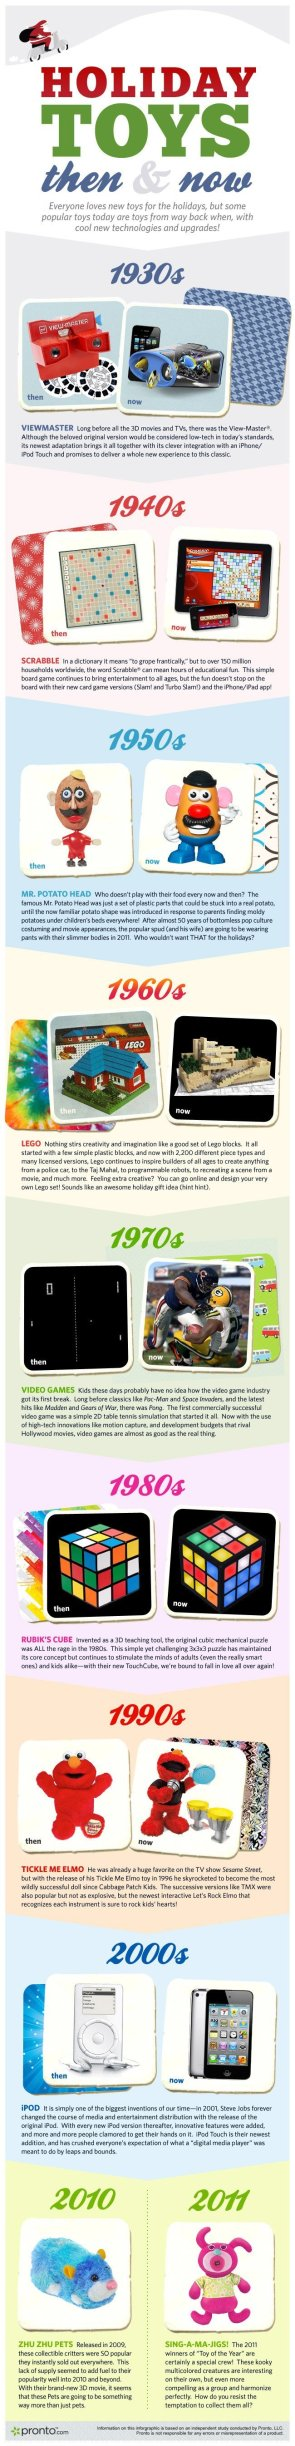 Holiday toys then and now